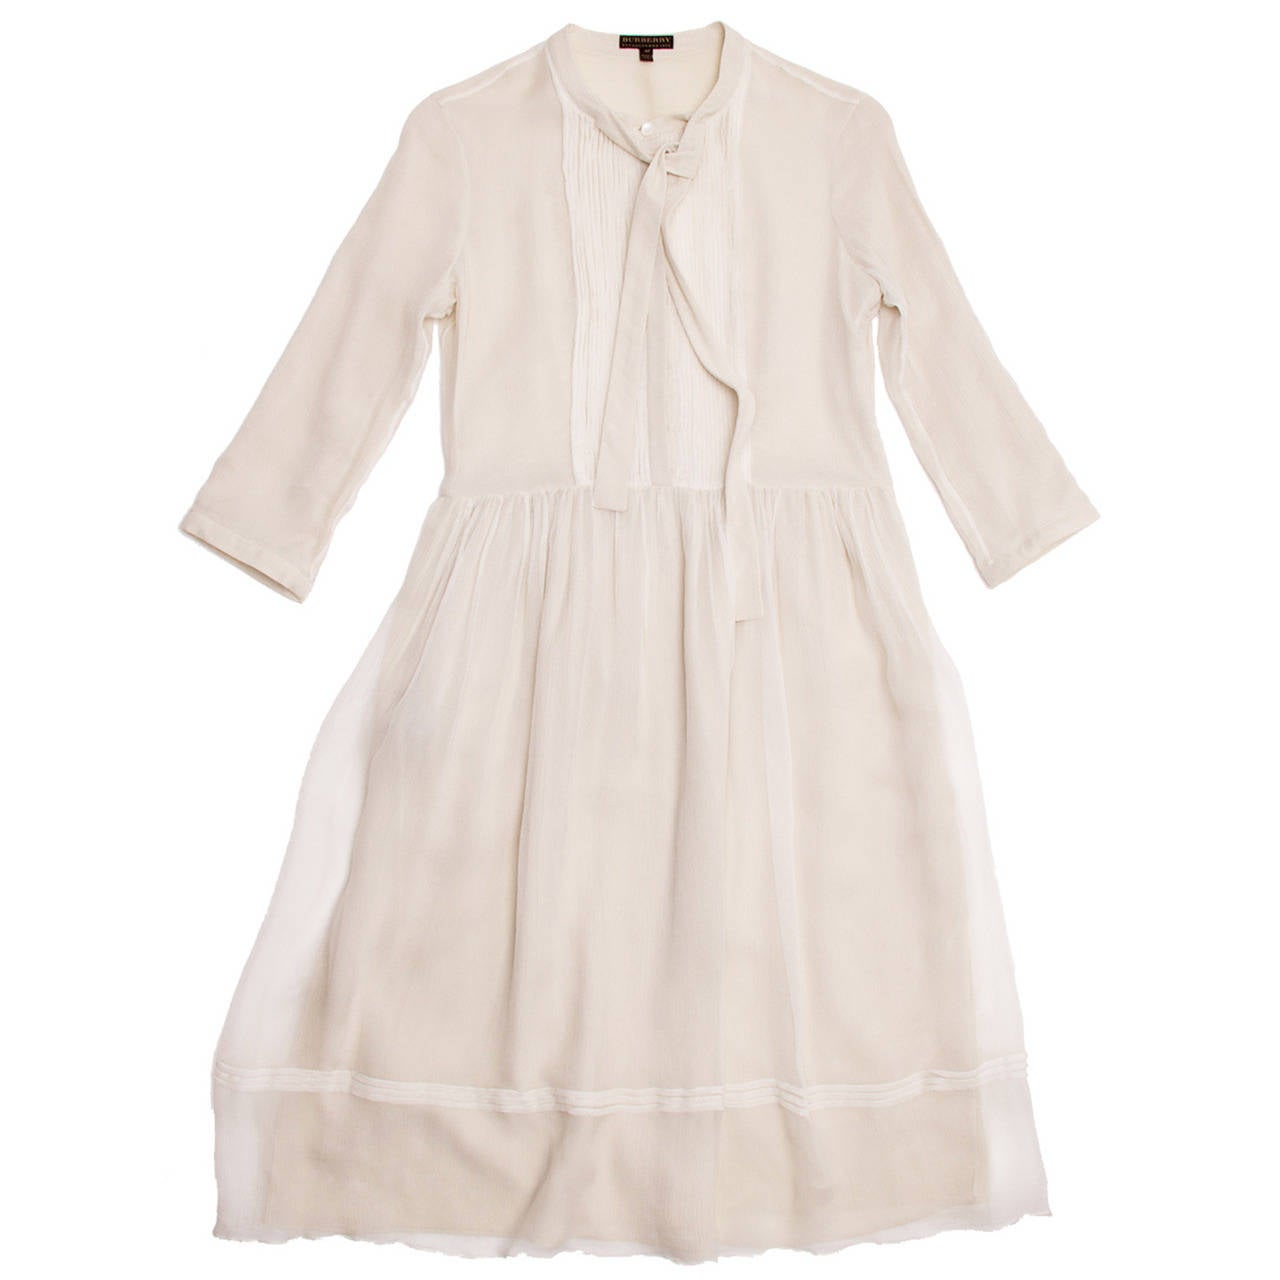 Burberry Ivory Crinkled Silk Chiffon Dress With Tie Neck 1